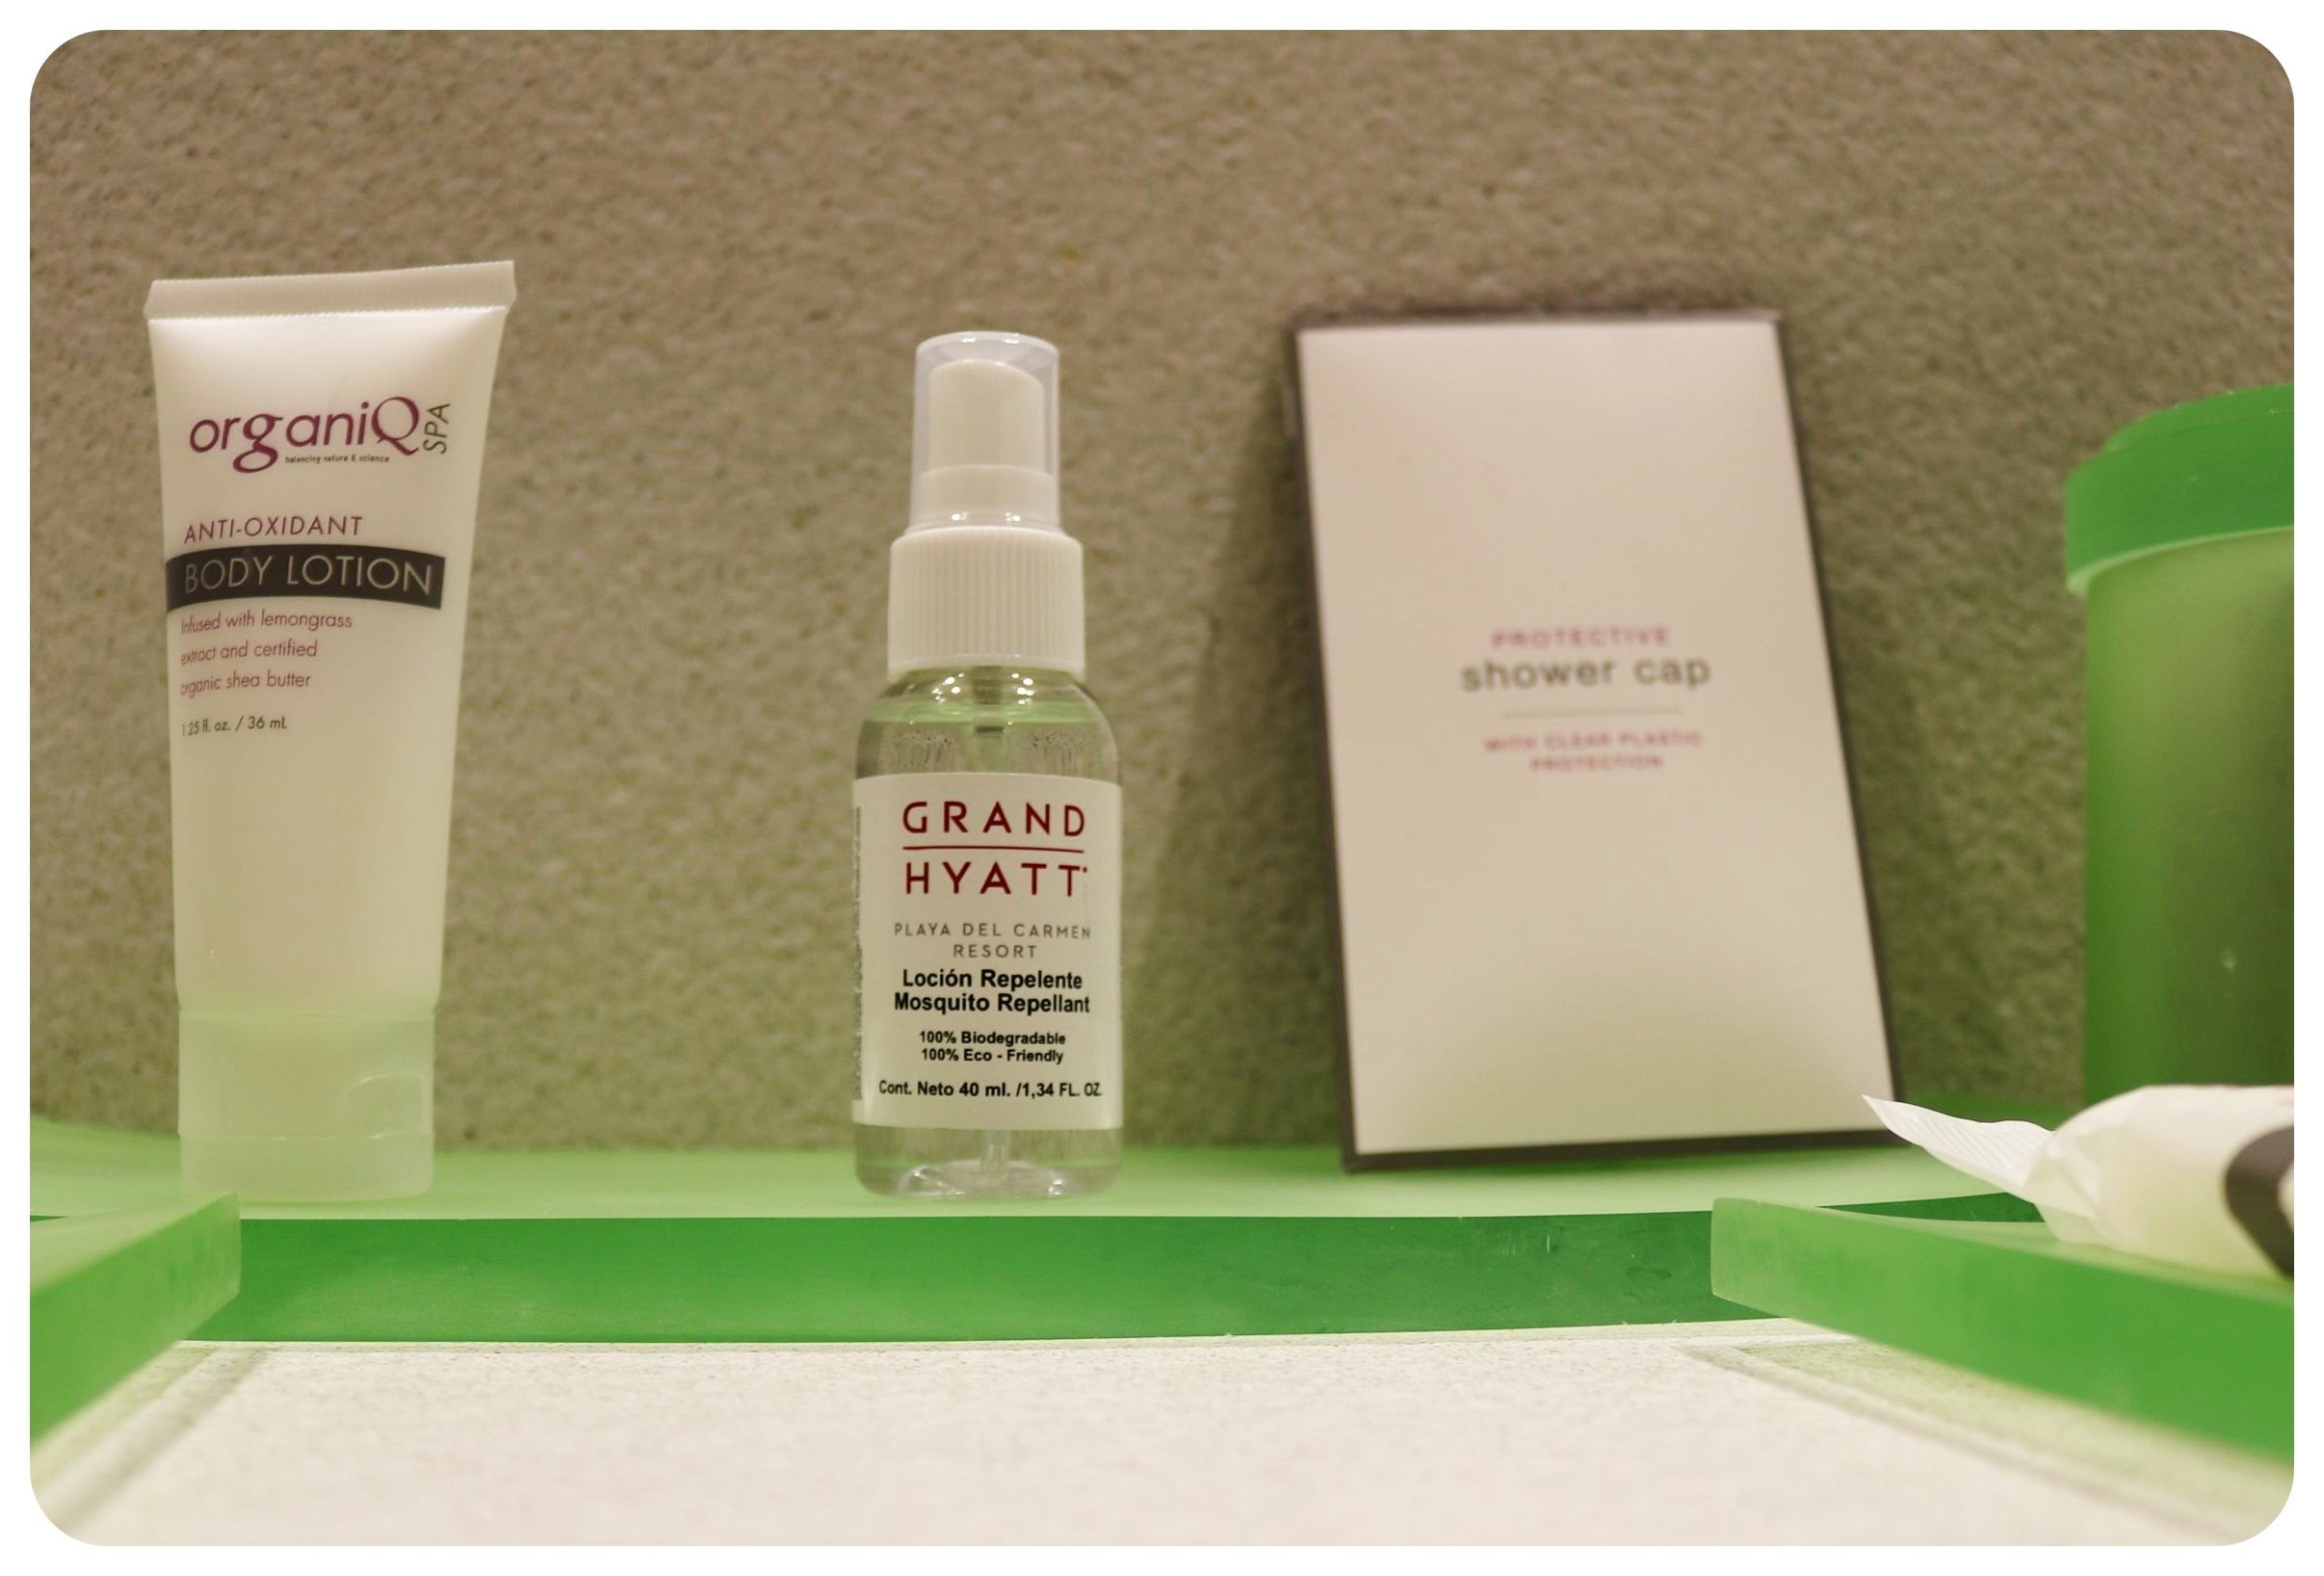 grand hyatt playa del carmen toiletries